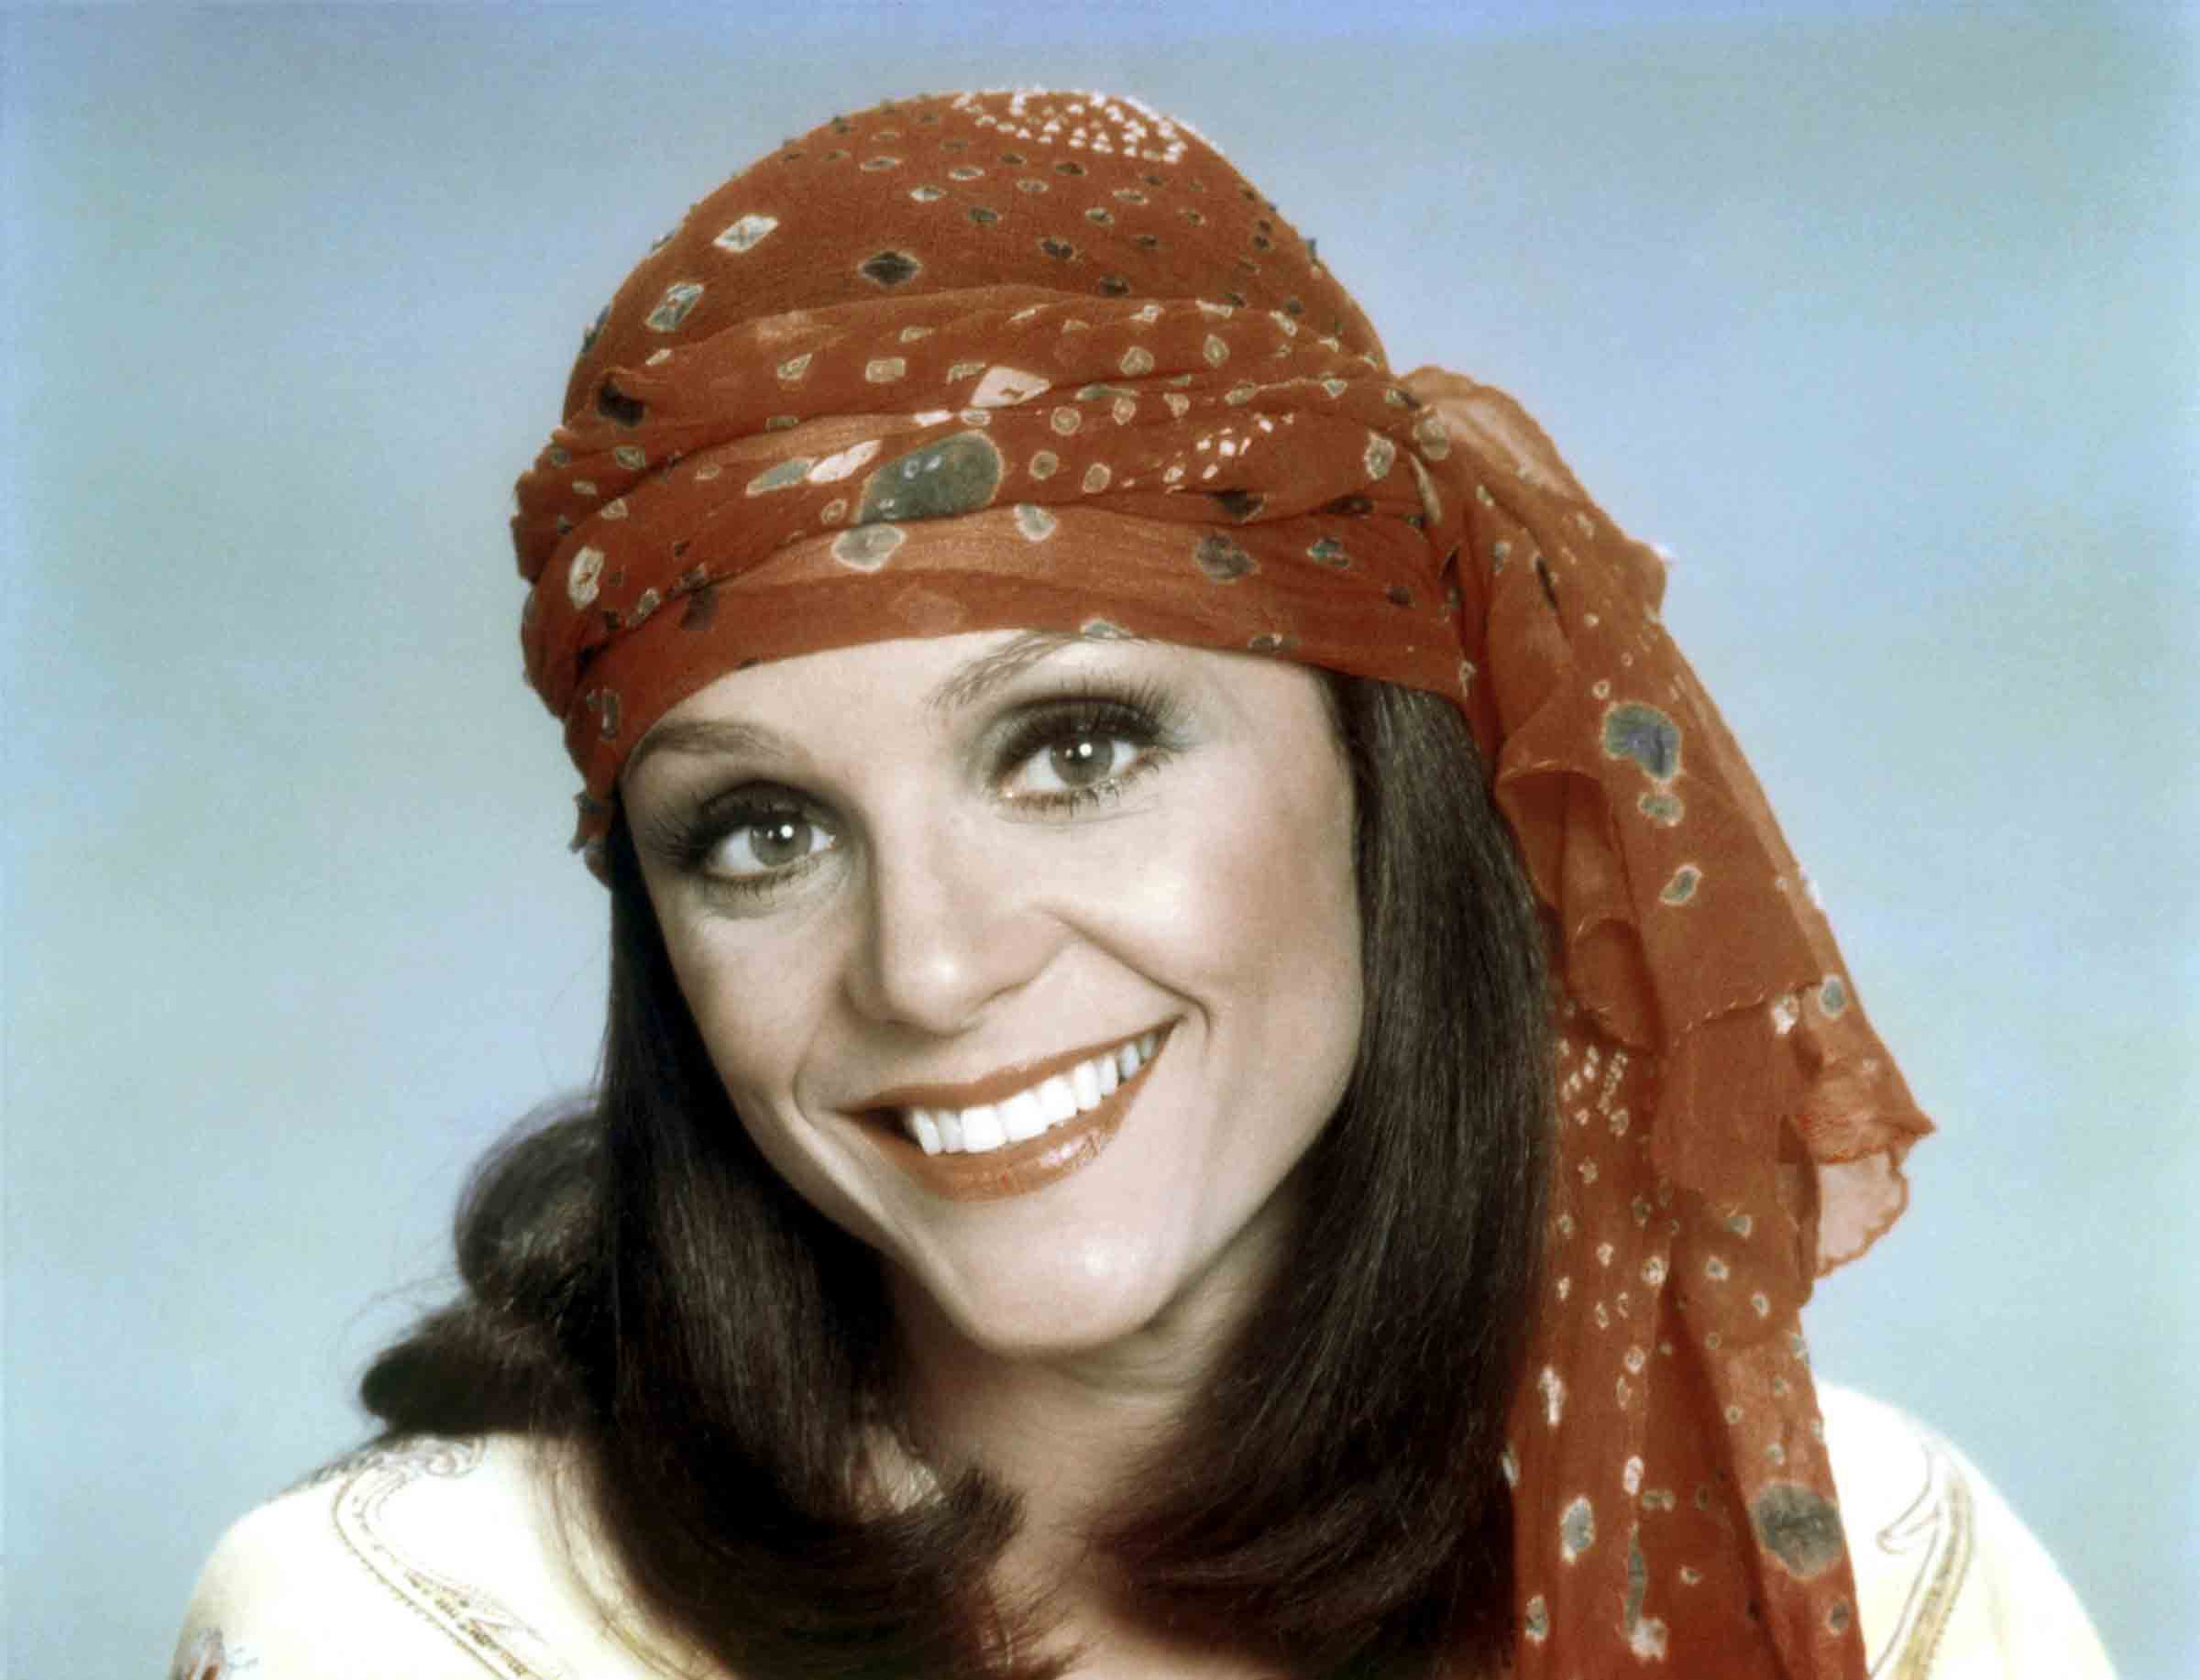 Harper's Rhoda headscarf—seen here in a mid-1970s publicity still from the show—became her signature look